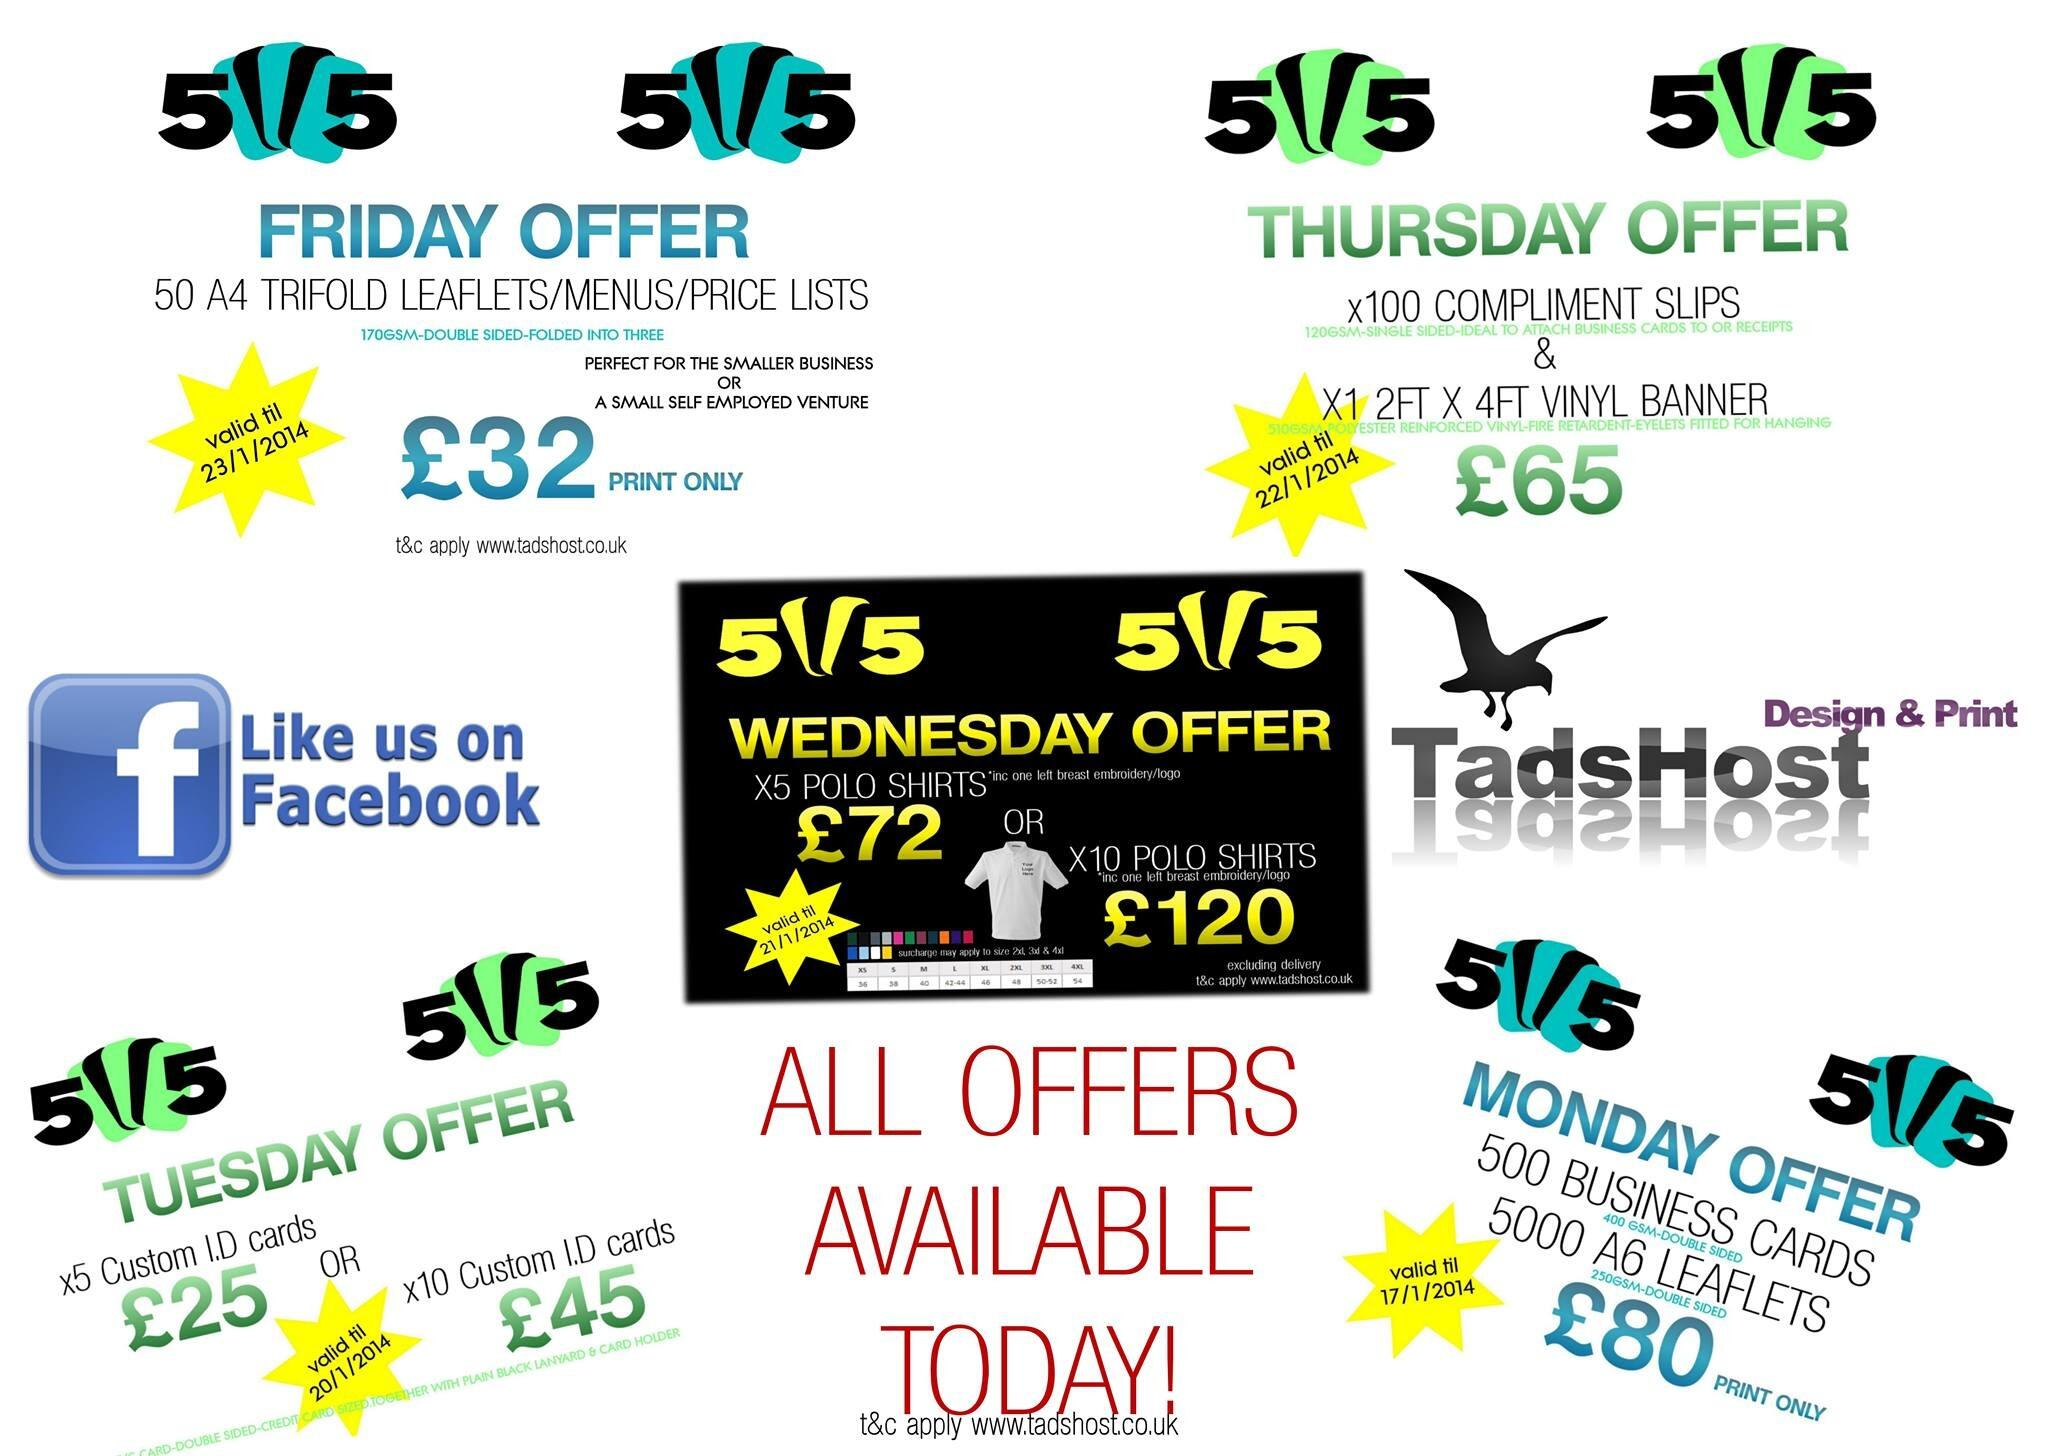 Twitter / tadshost: WOW TODAY ONLY all 5 #offers ...